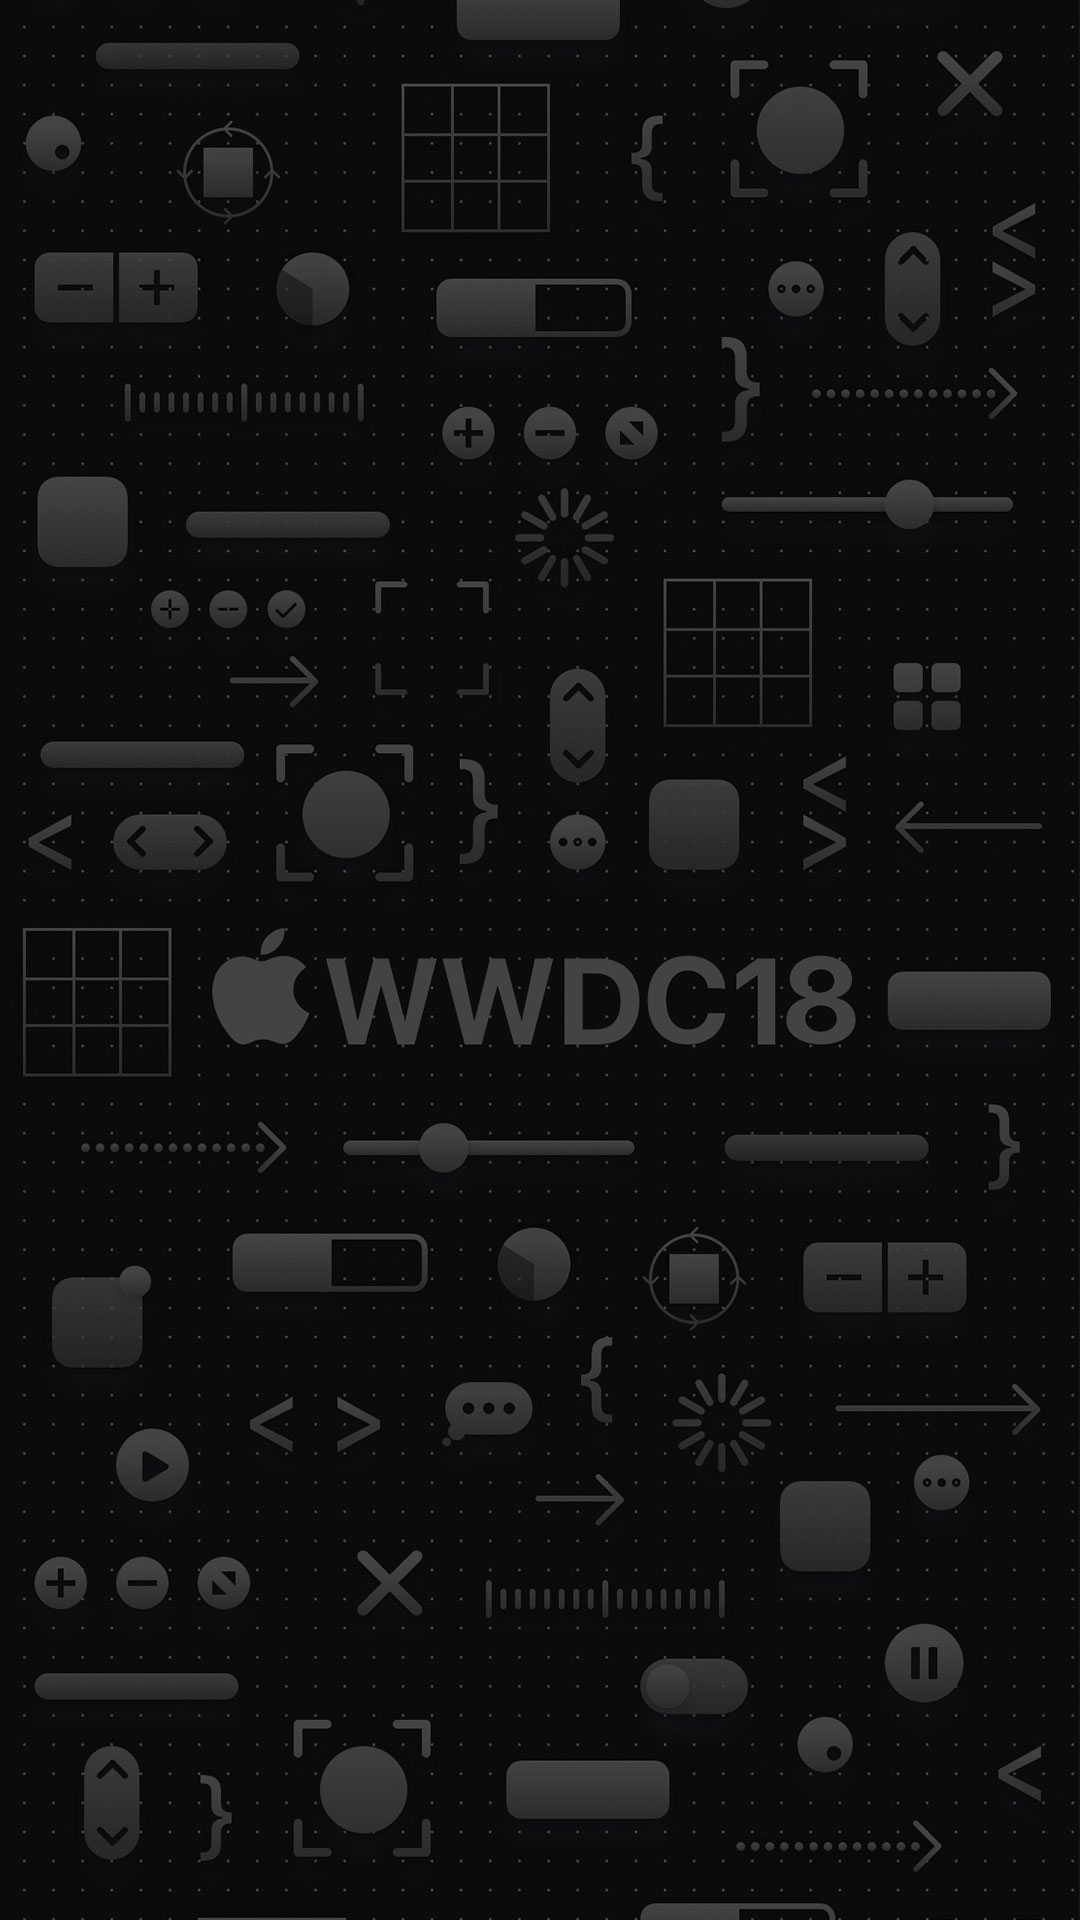 iPhone wallpaper wwdc icons black WWDC18